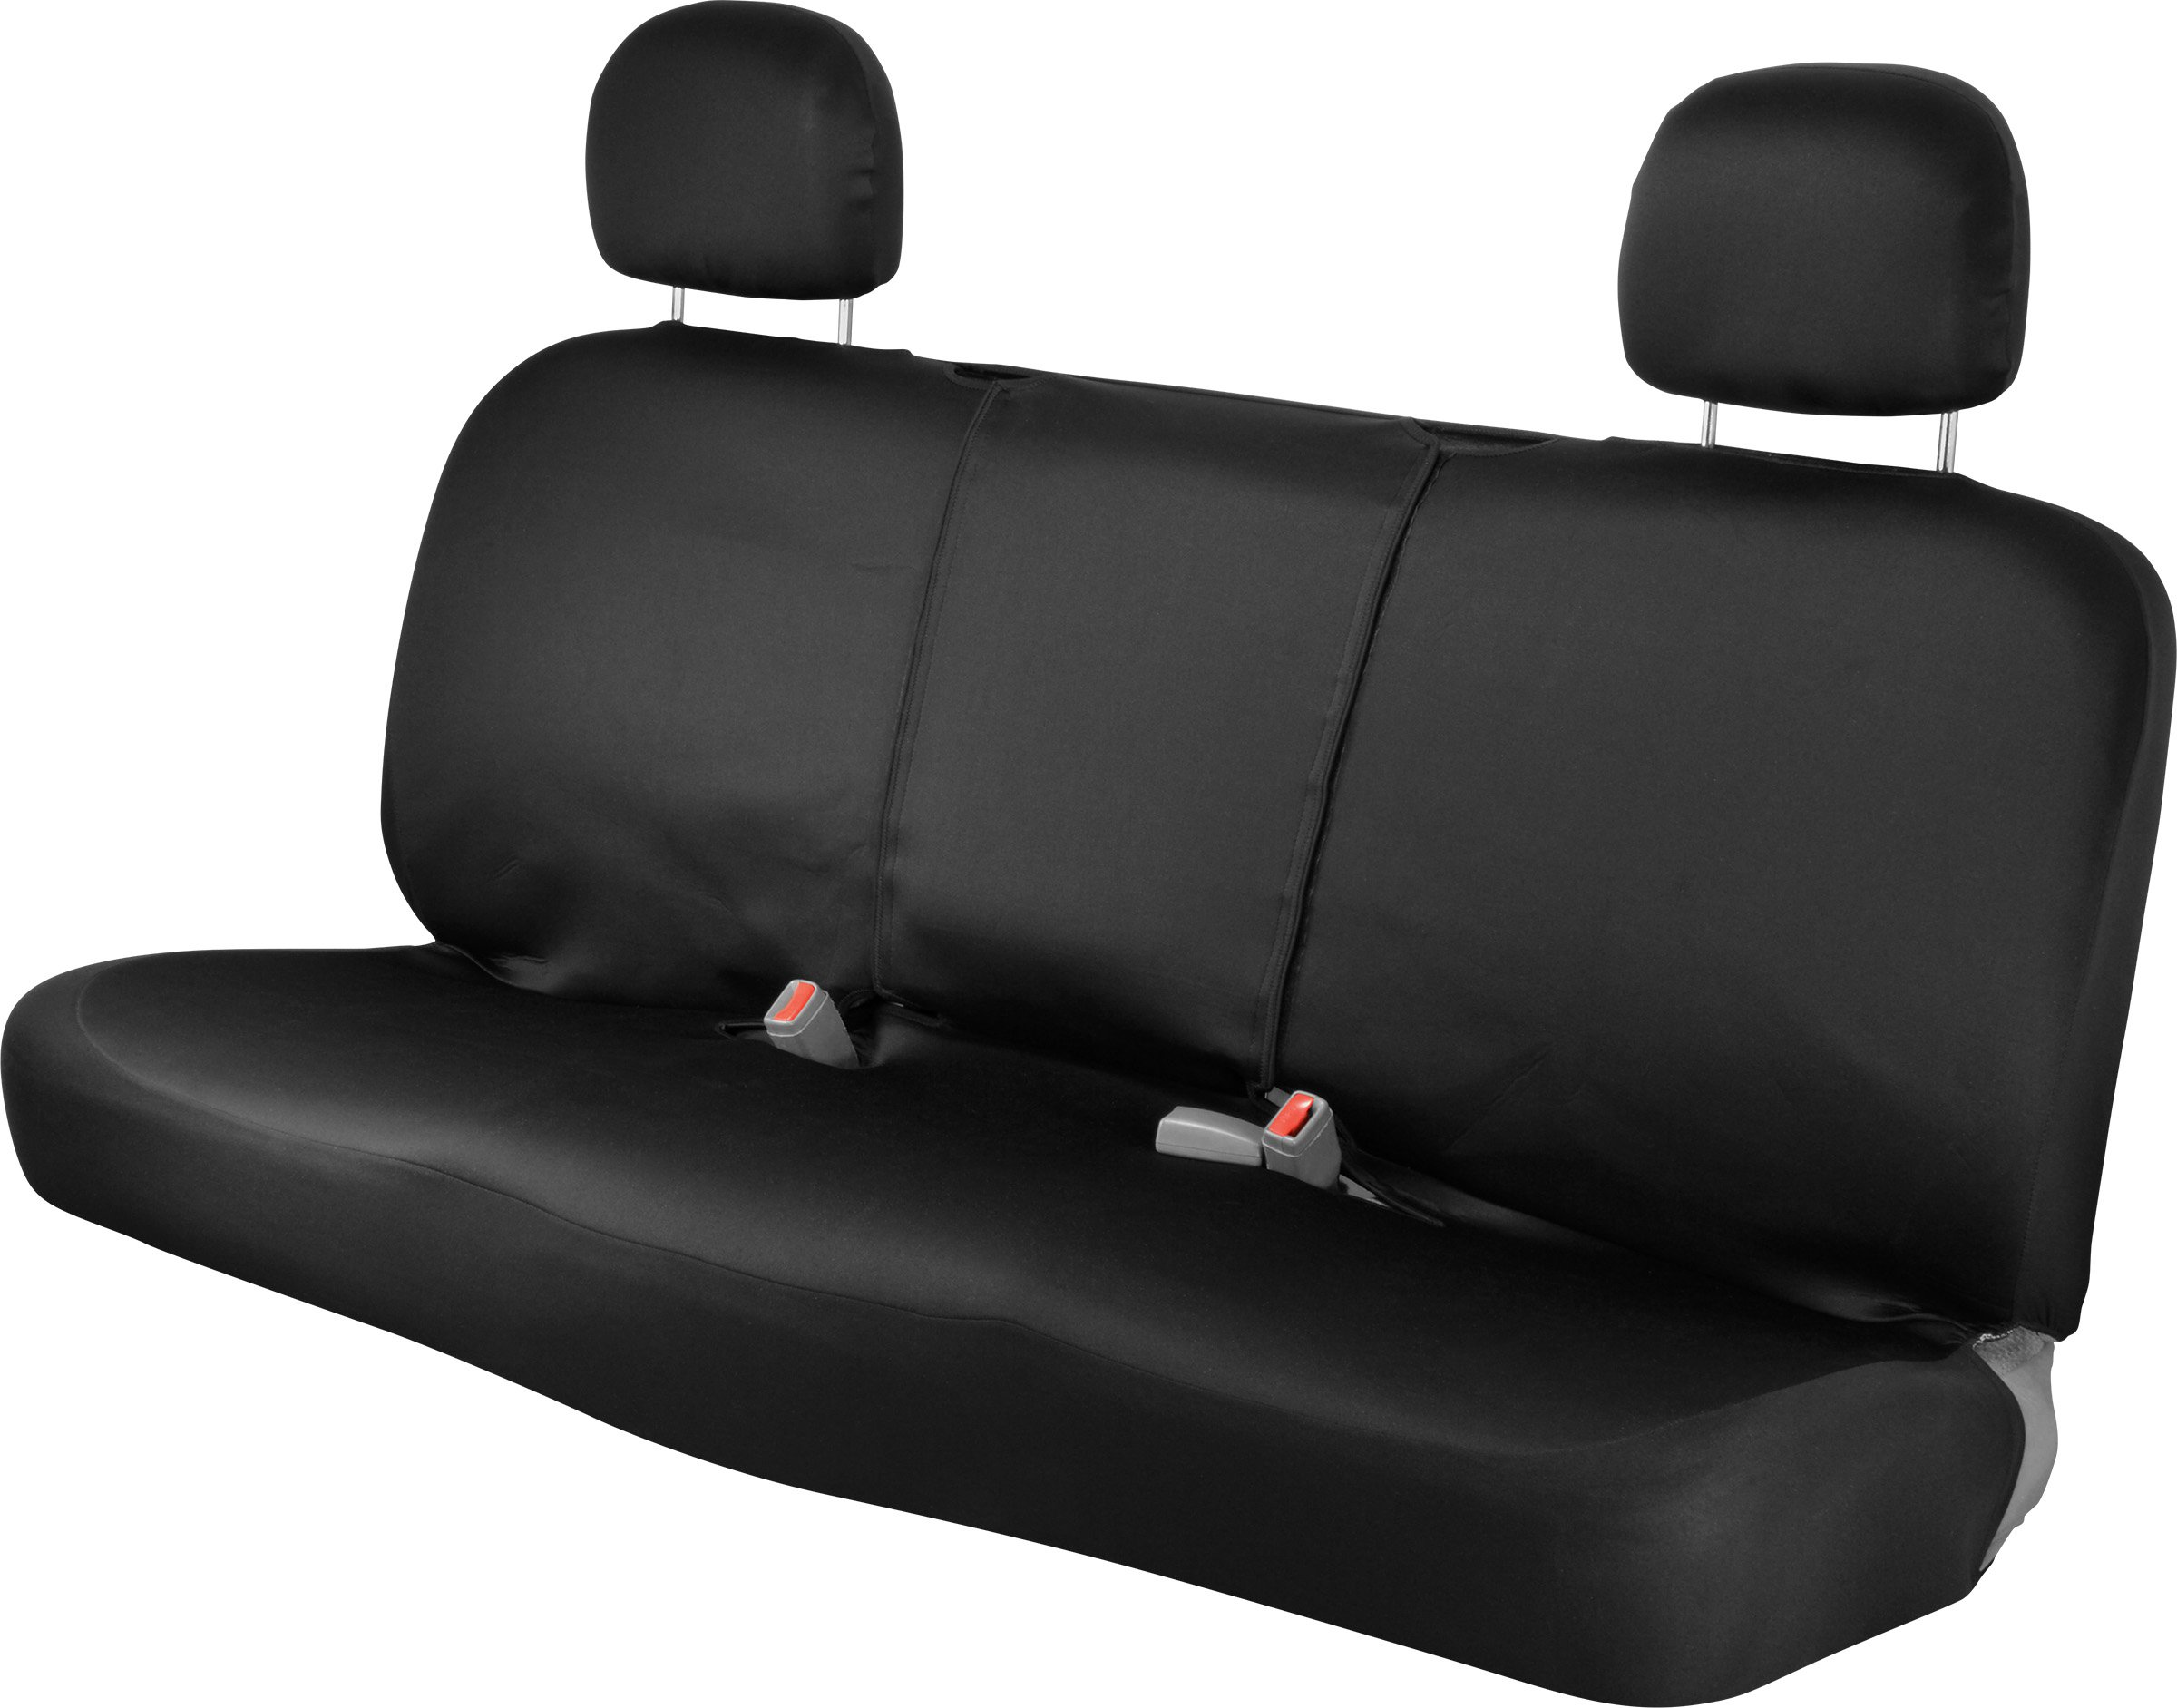 Marvelous Details About Body Glove Bench Seat Cover Black 70332 9 Cjindustries Chair Design For Home Cjindustriesco